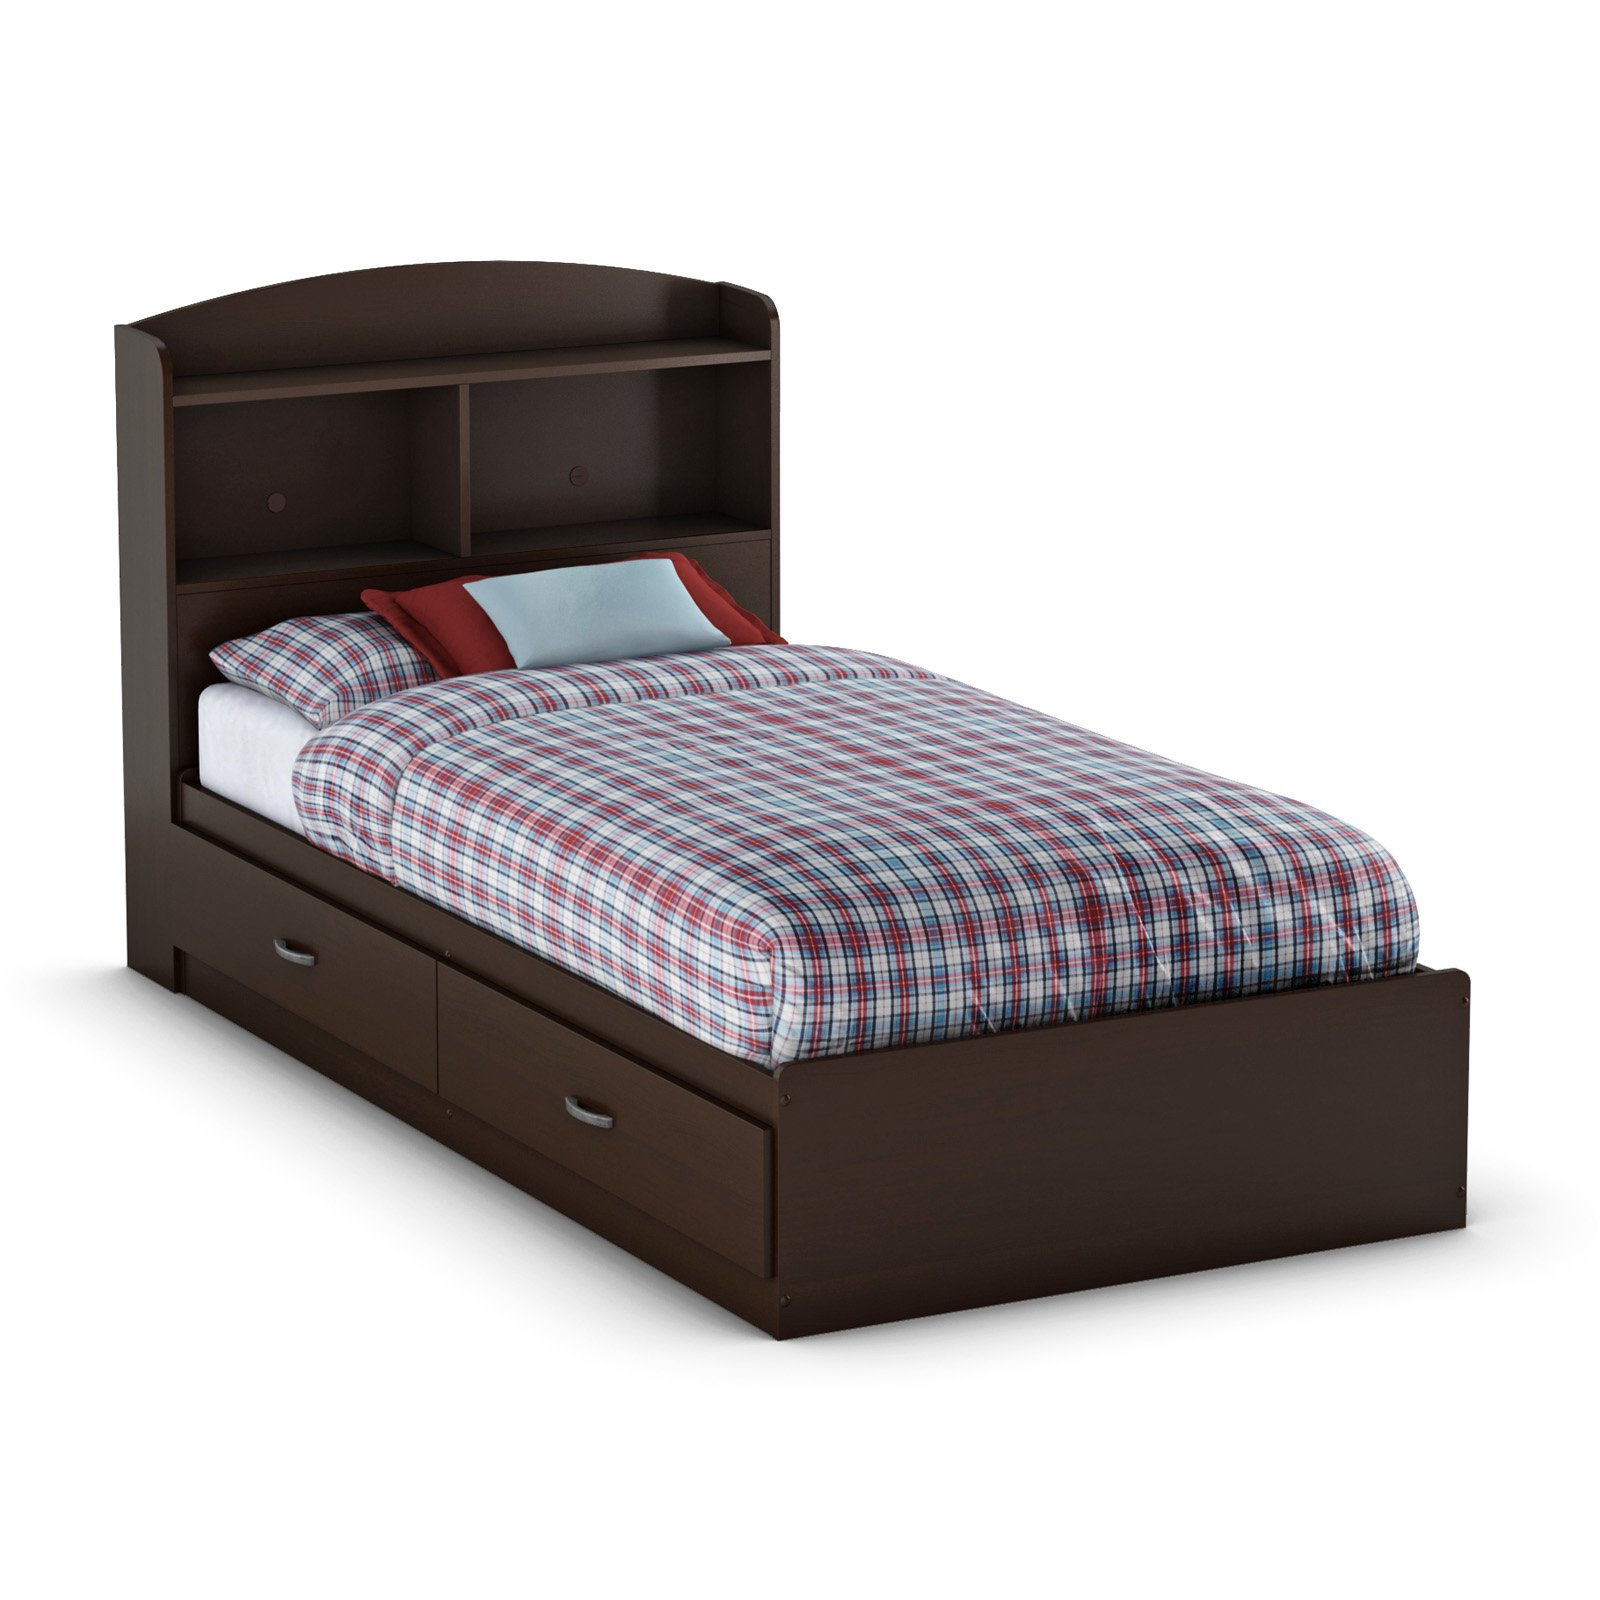 South Shore Logik Bookcase Bed Collection - Chocolate